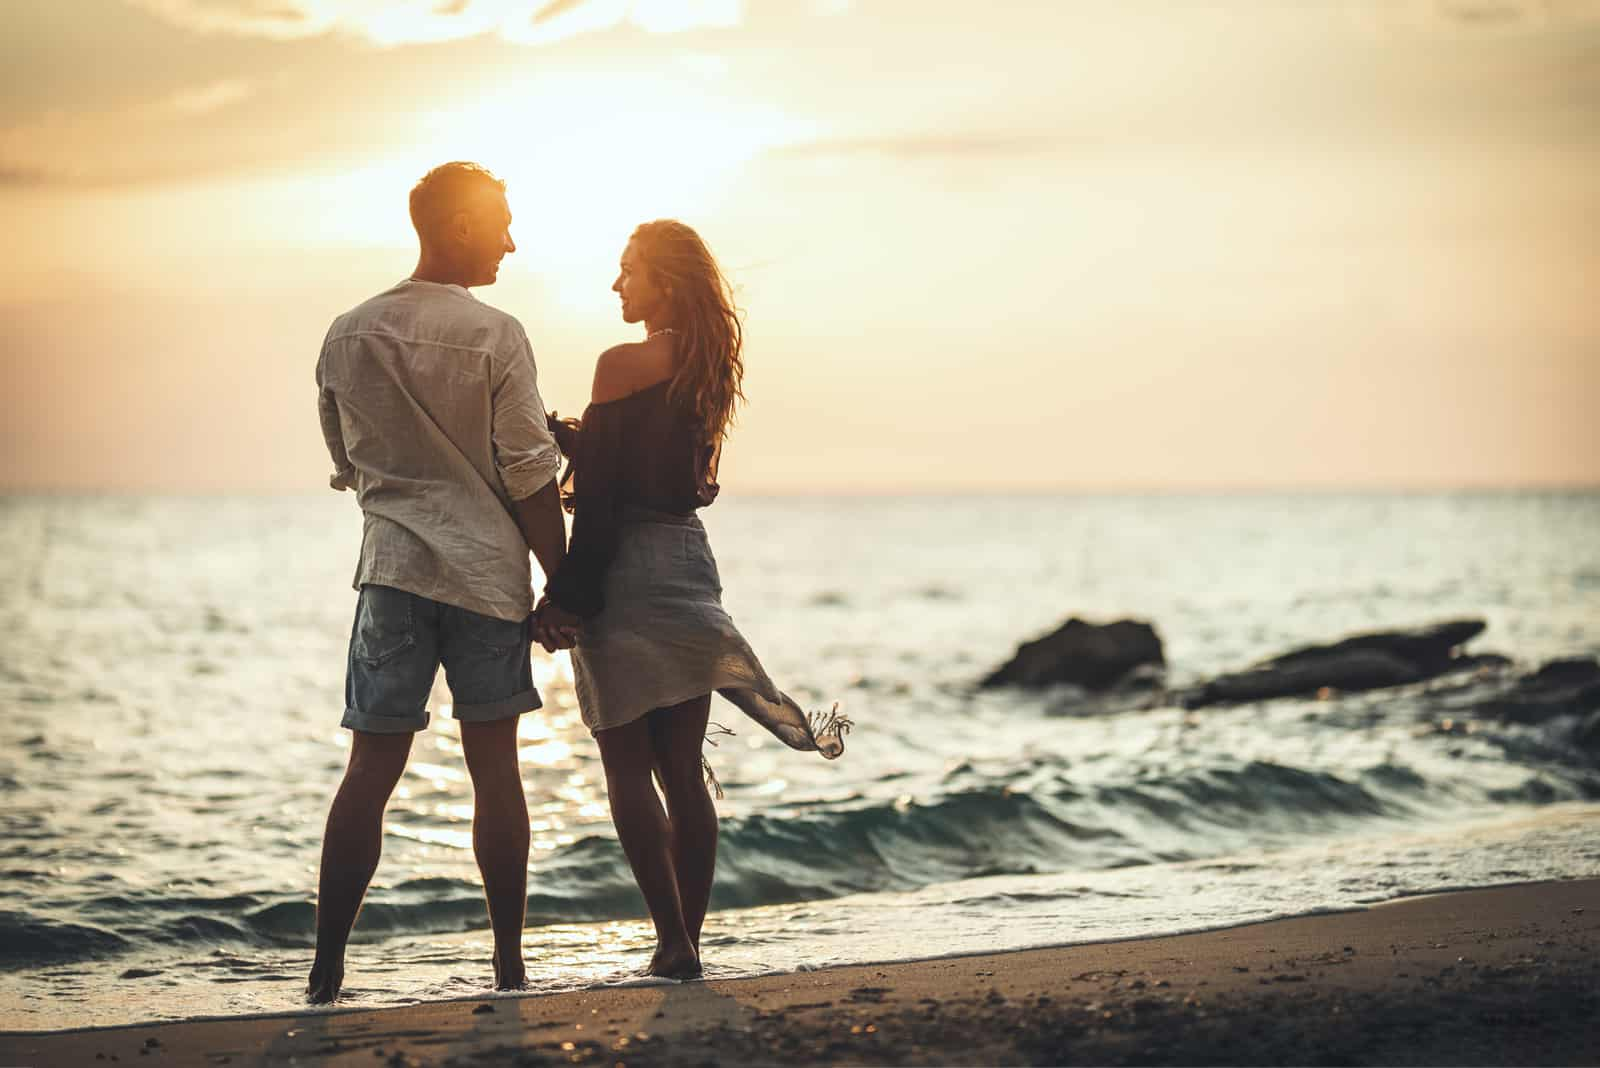 a man and a woman are standing on the beach by the sea holding hands